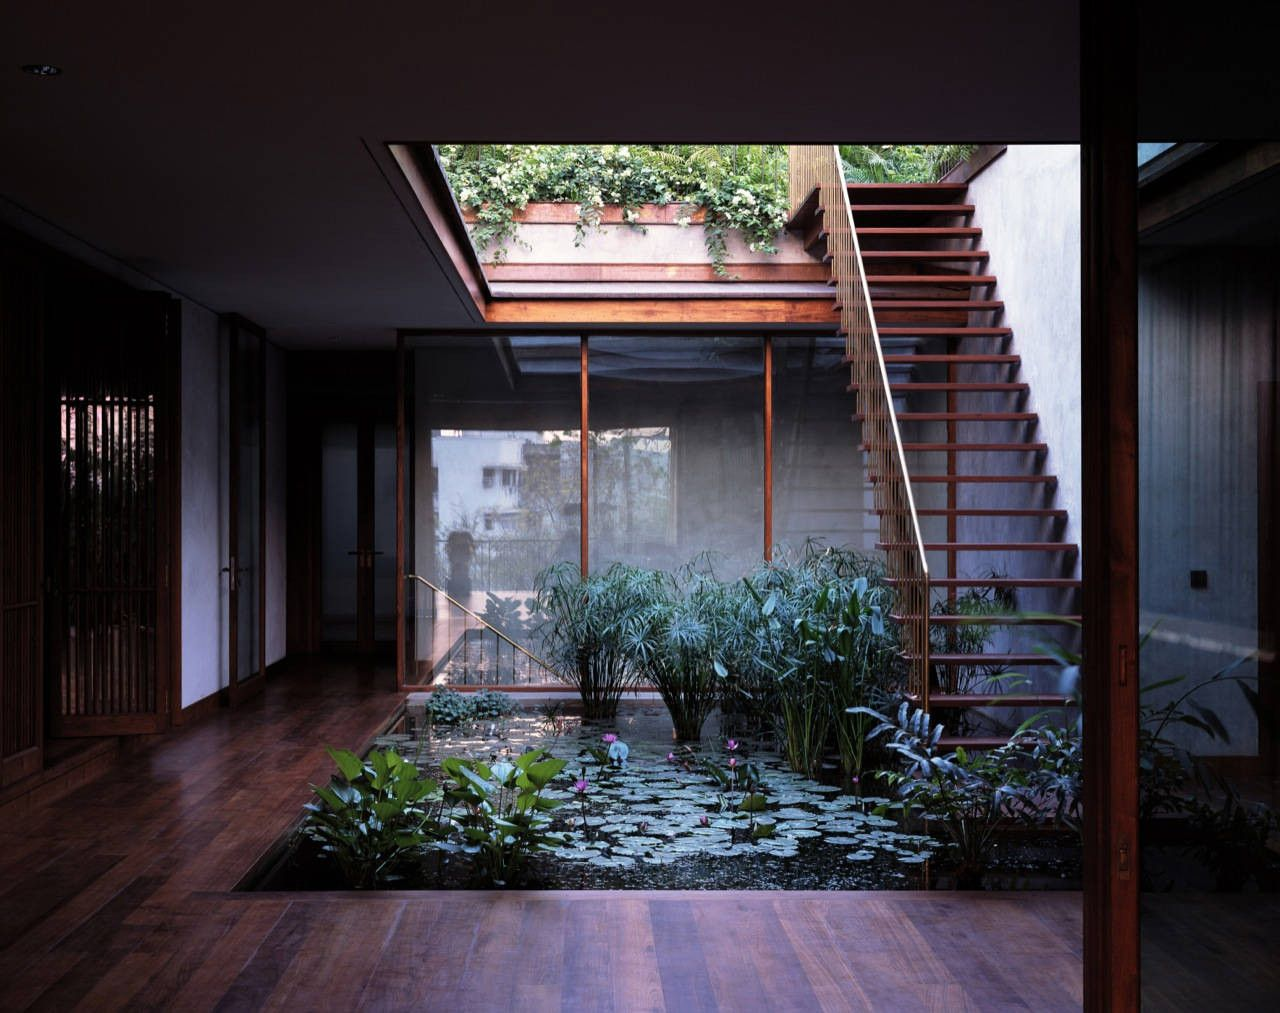 House on Pali Hill interior courtyard